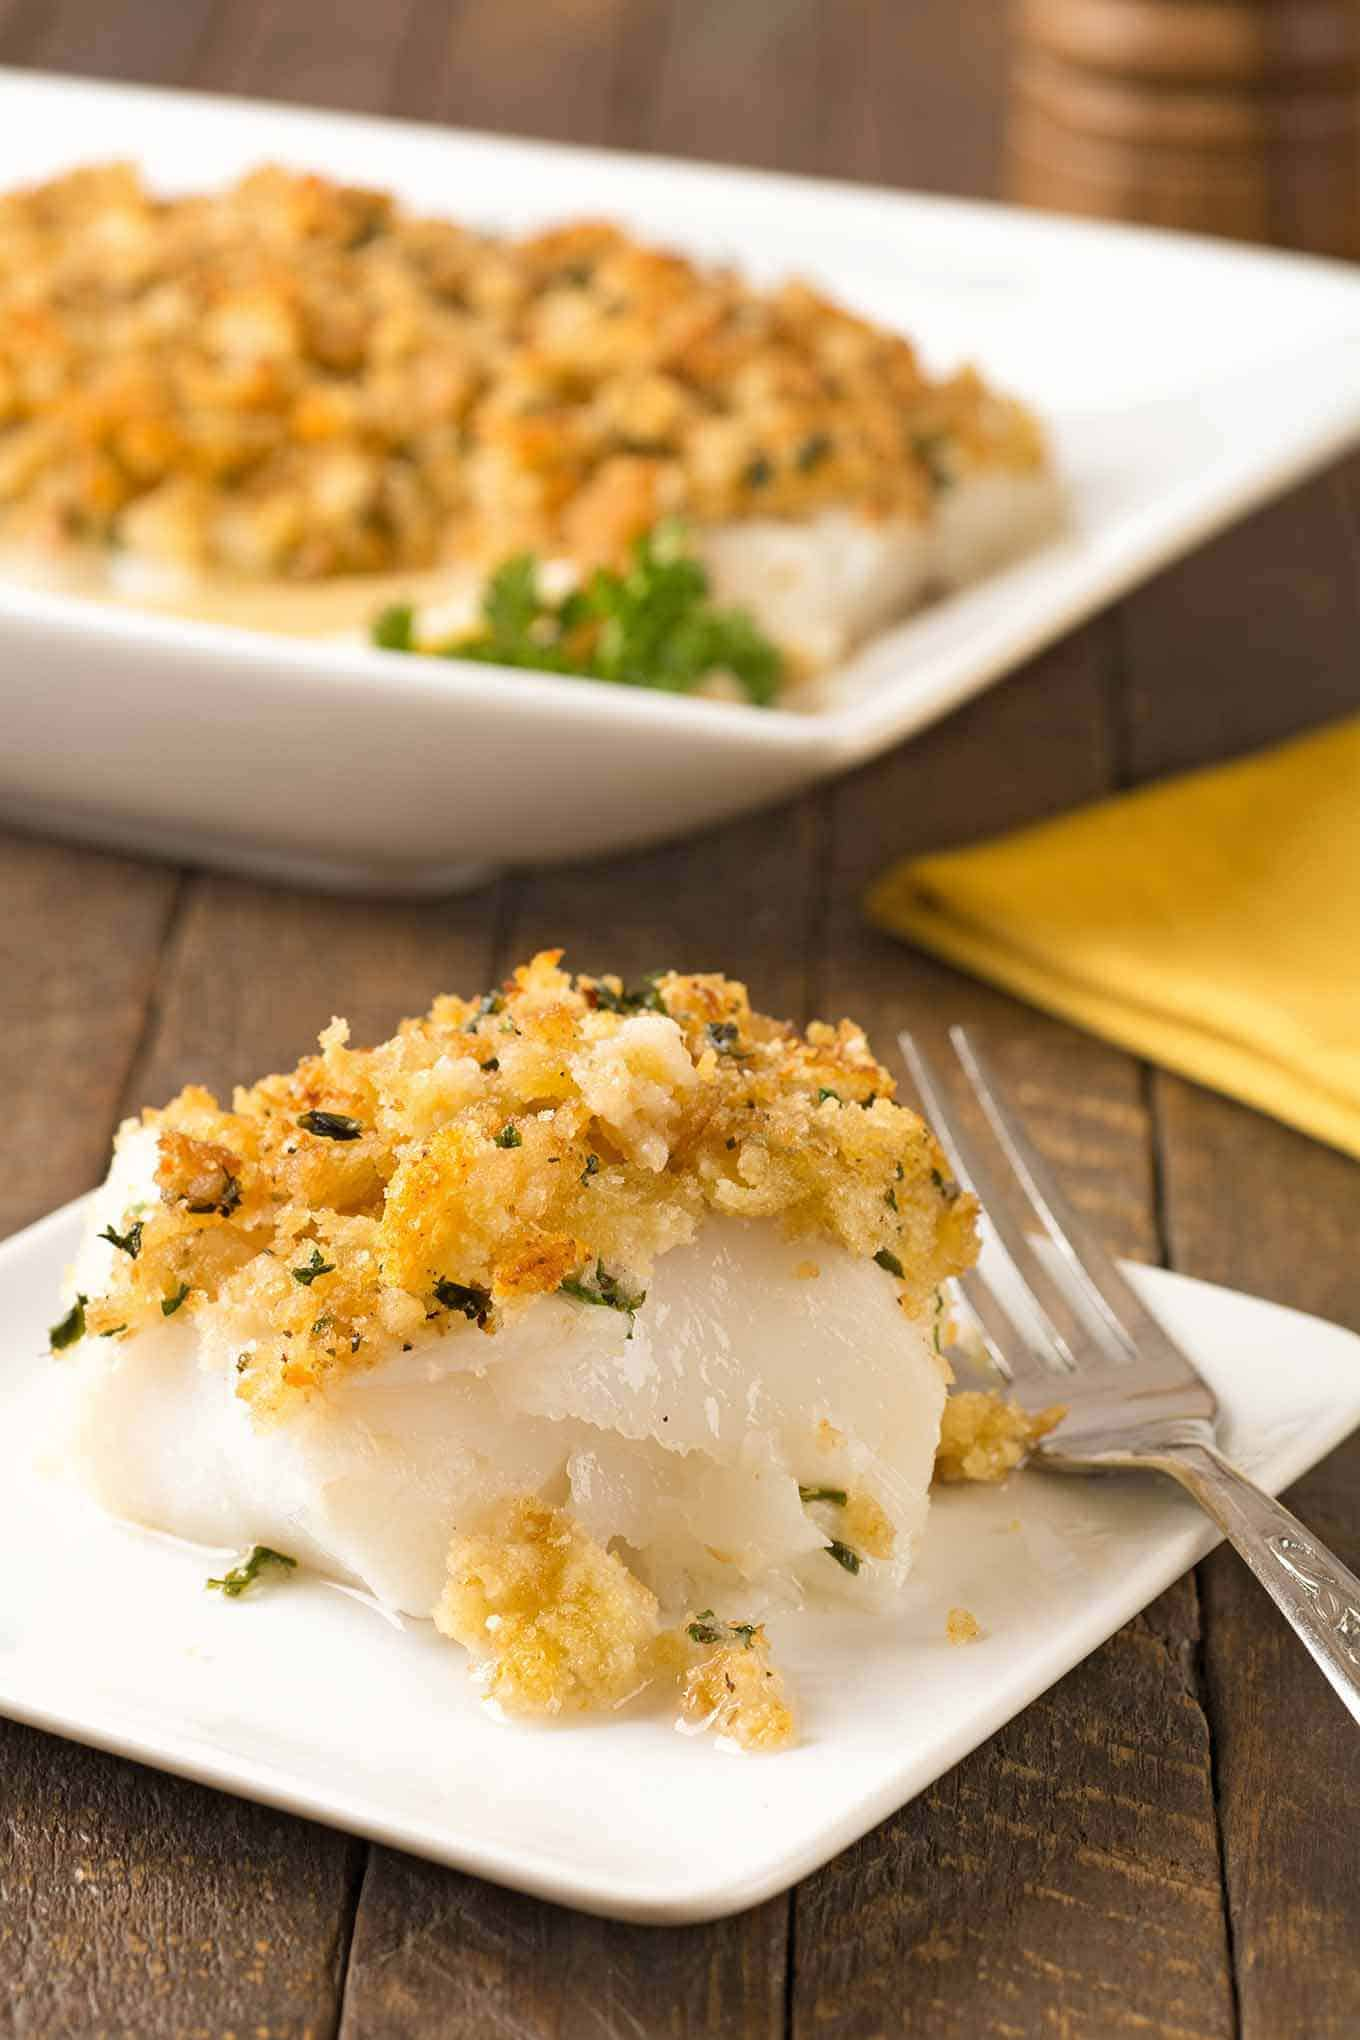 A serving of baked cod topped with a mixture of buttered crumbs, garlic, and parsley.